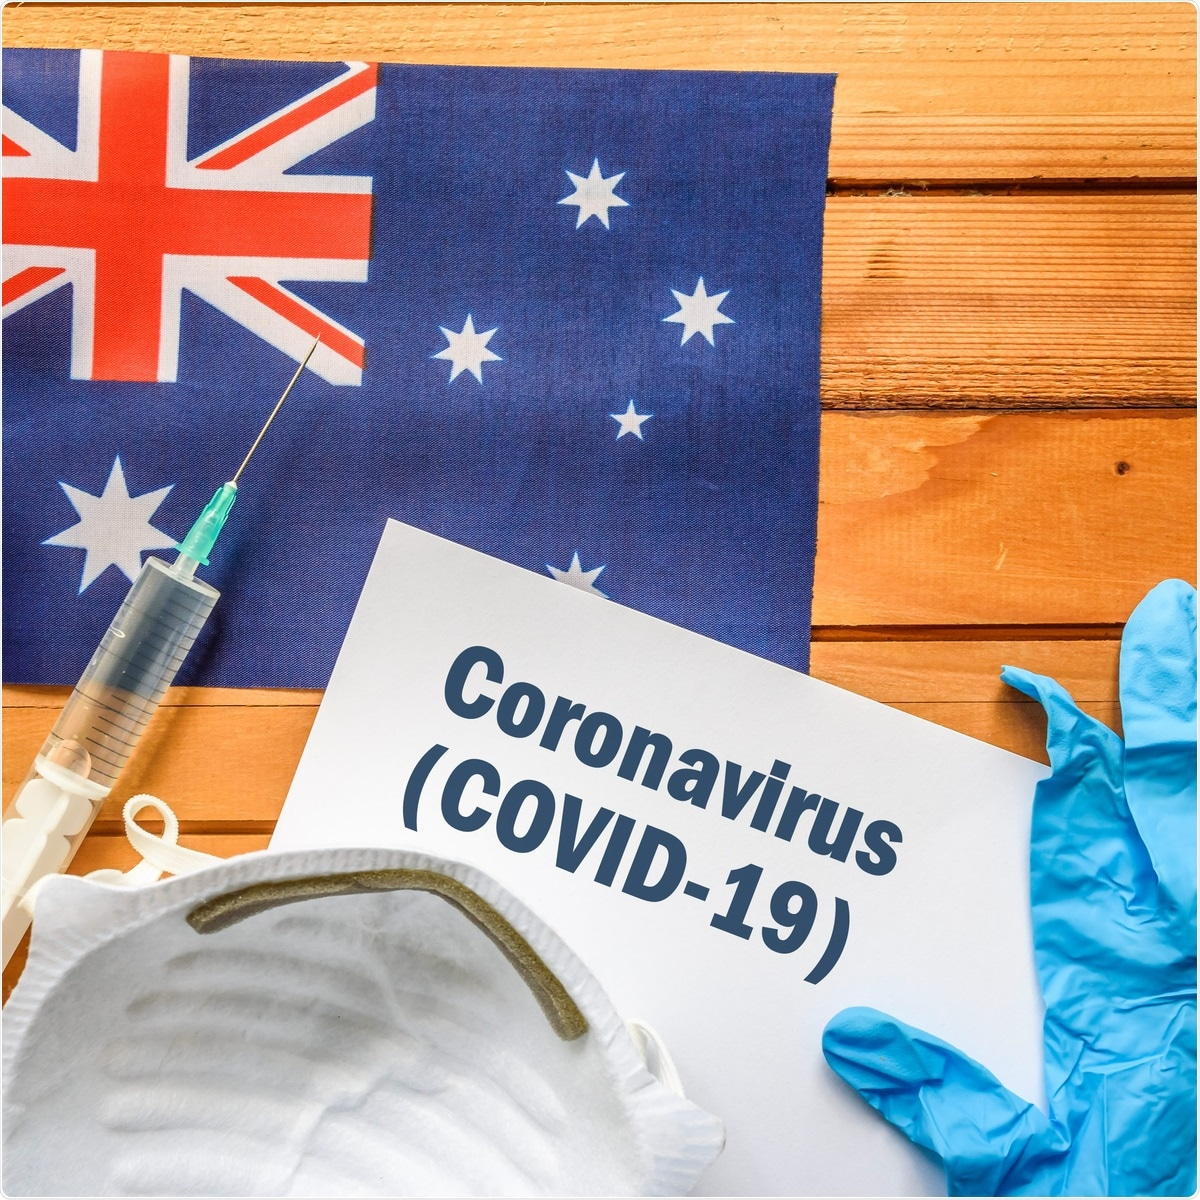 Study: COVID-19 vaccine hesitancy and resistance: Correlates in a nationally representative longitudinal survey of the Australian population. Image Credit: GagoDesign / Shutterstock